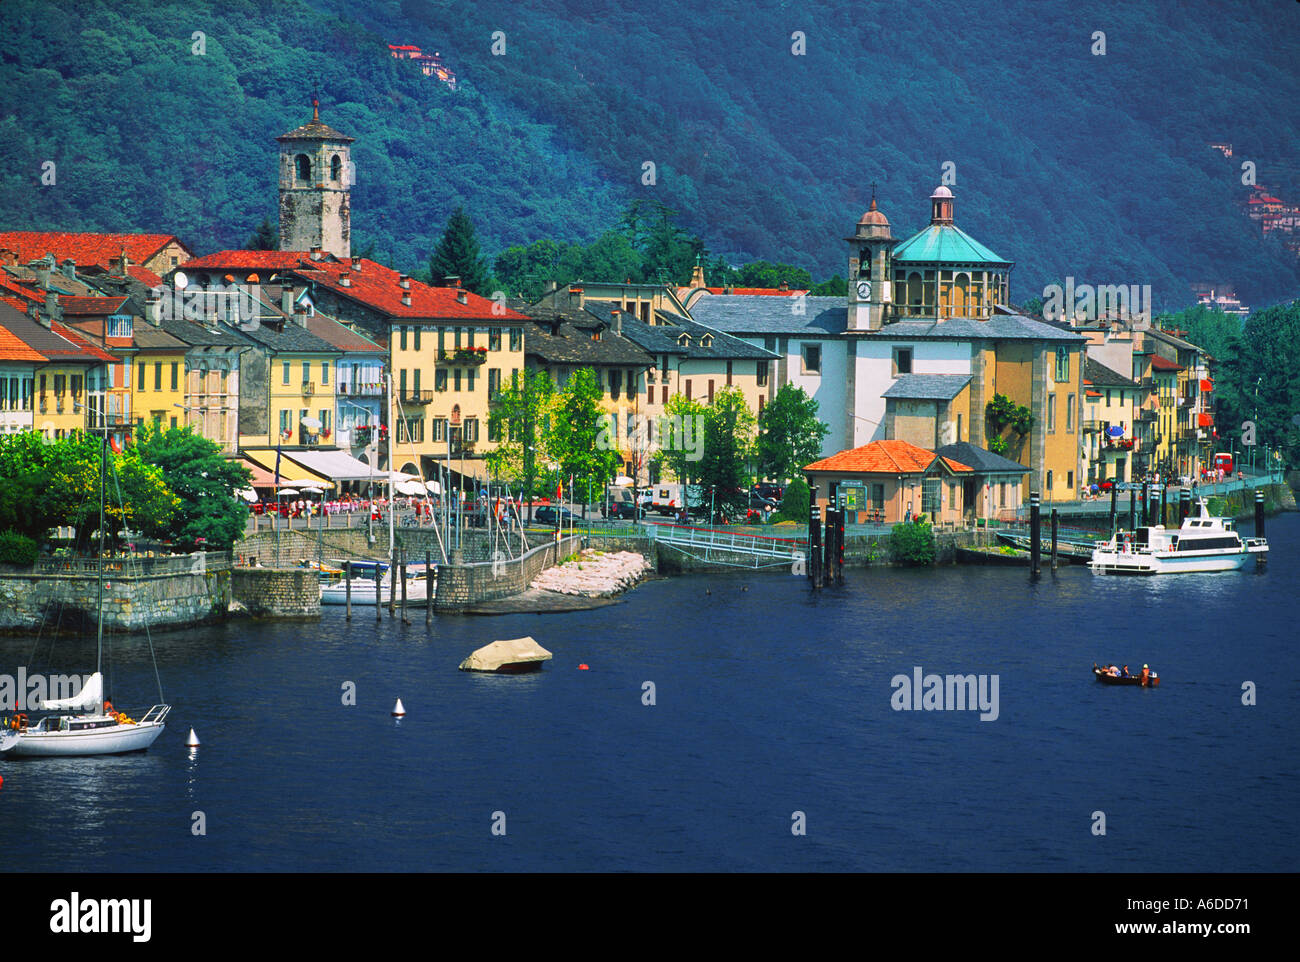 cannobio lago maggiore italy stock photo 449905 alamy. Black Bedroom Furniture Sets. Home Design Ideas